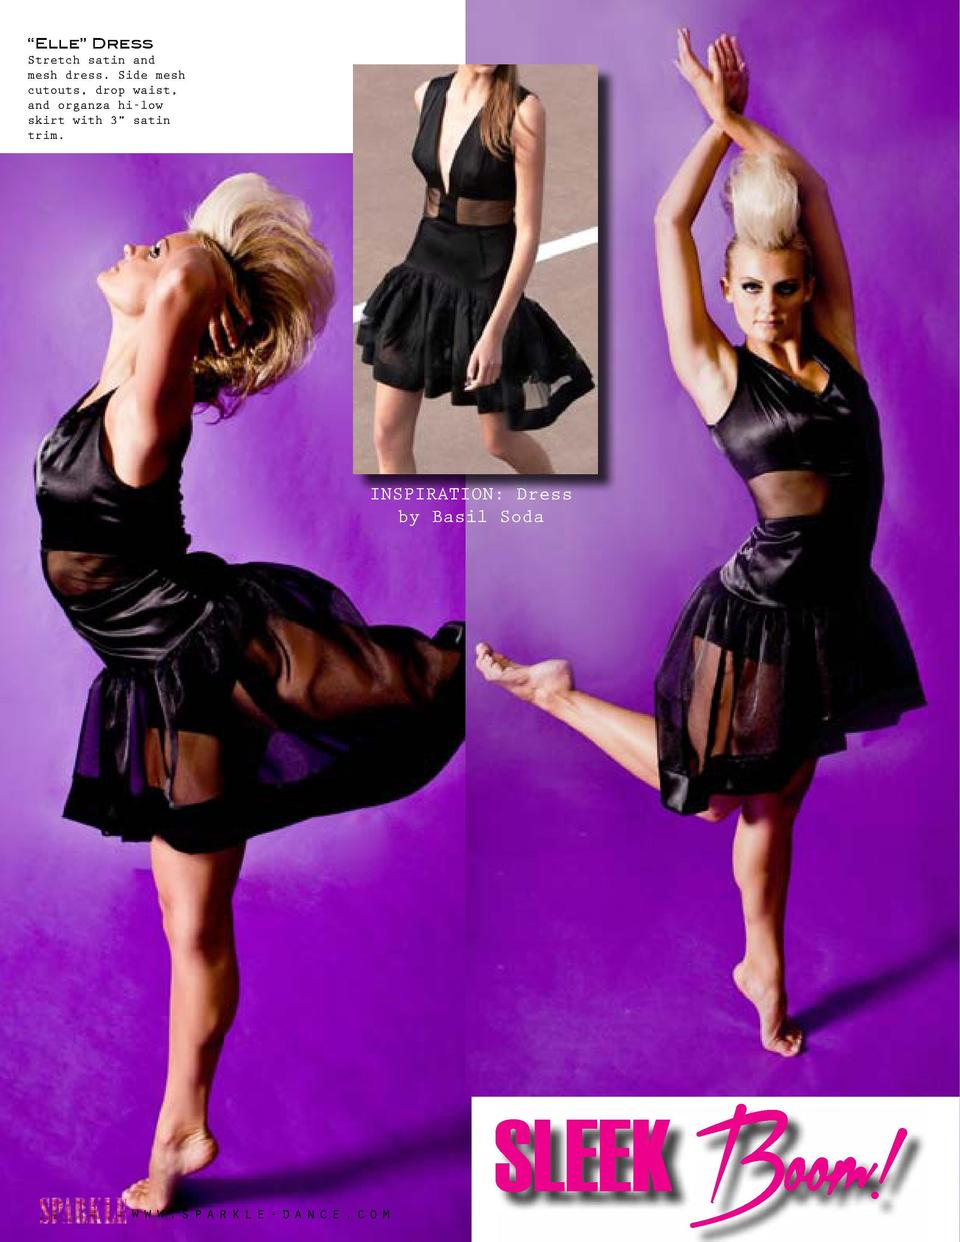 Strong and Fierce      Elle    Dress Stretch satin and mesh dress. Side mesh cutouts, drop waist, and organza hi-low skirt...